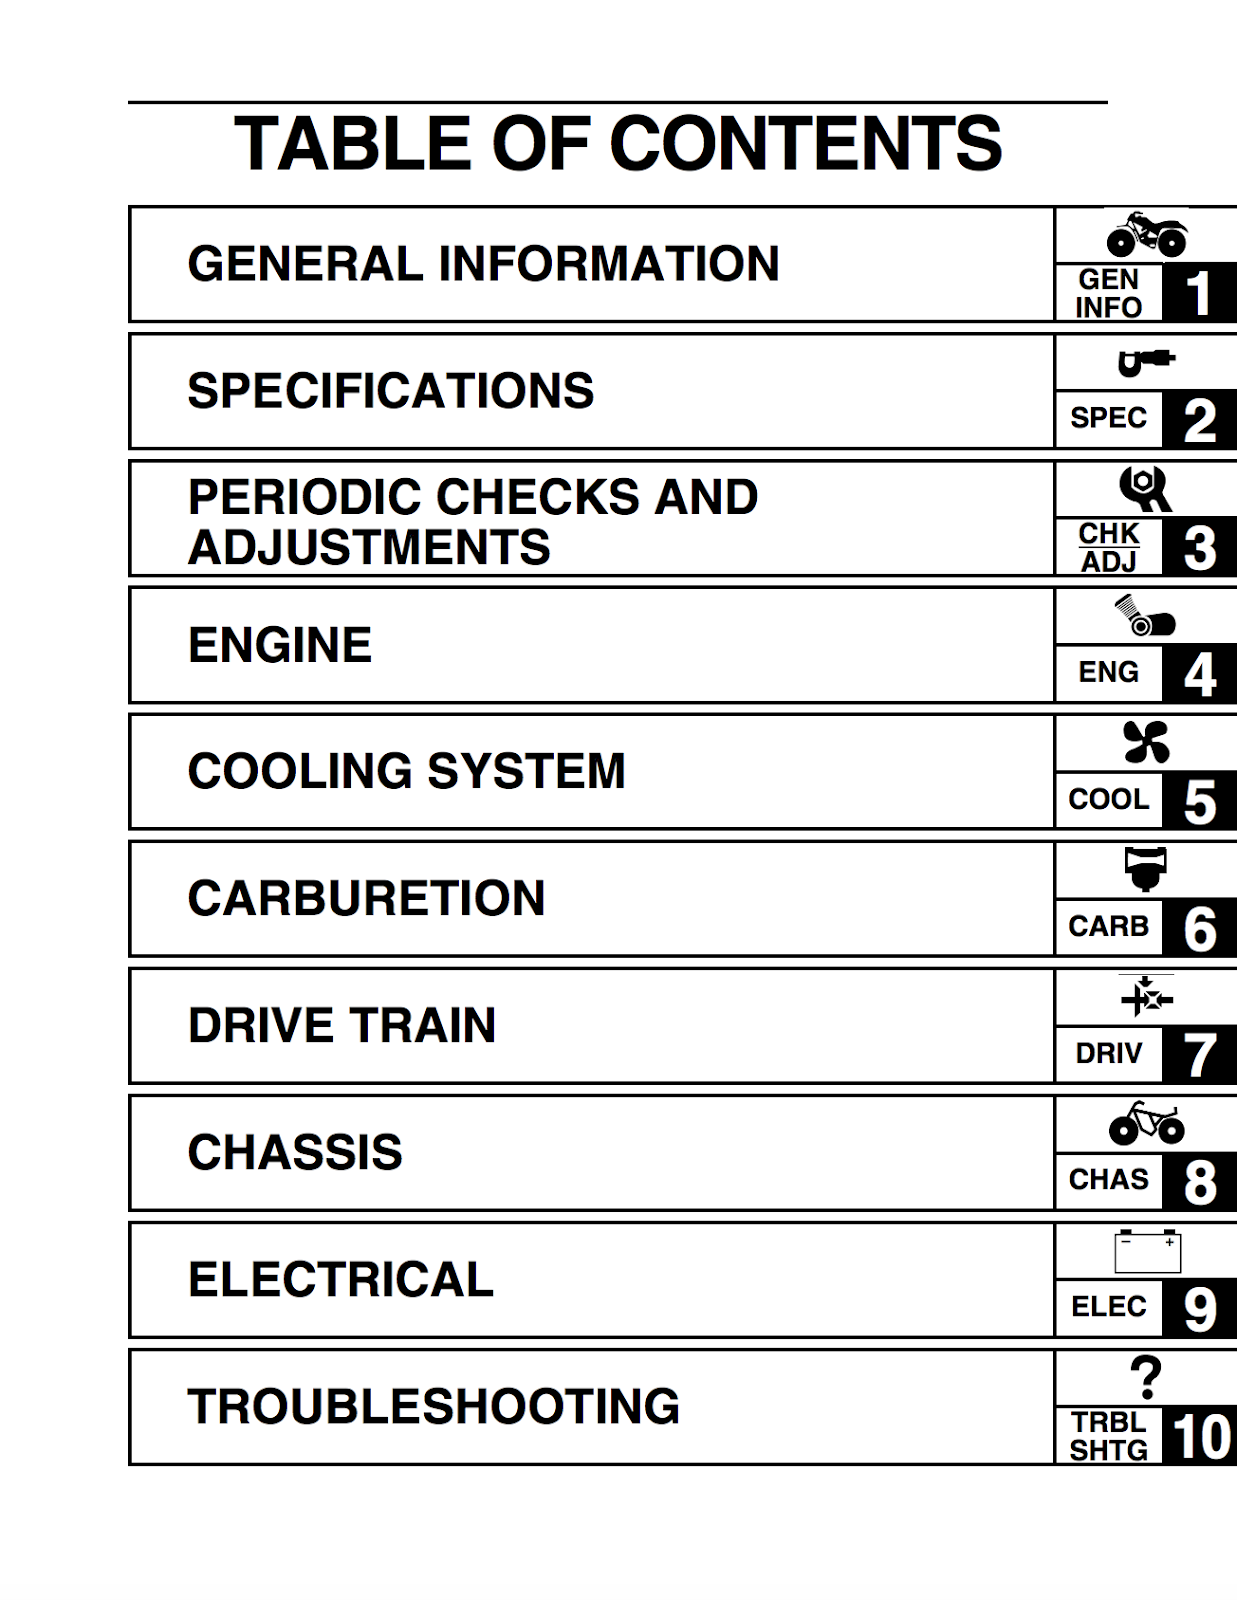 medium resolution of table of contents from yamaha kodiak 400 service manual